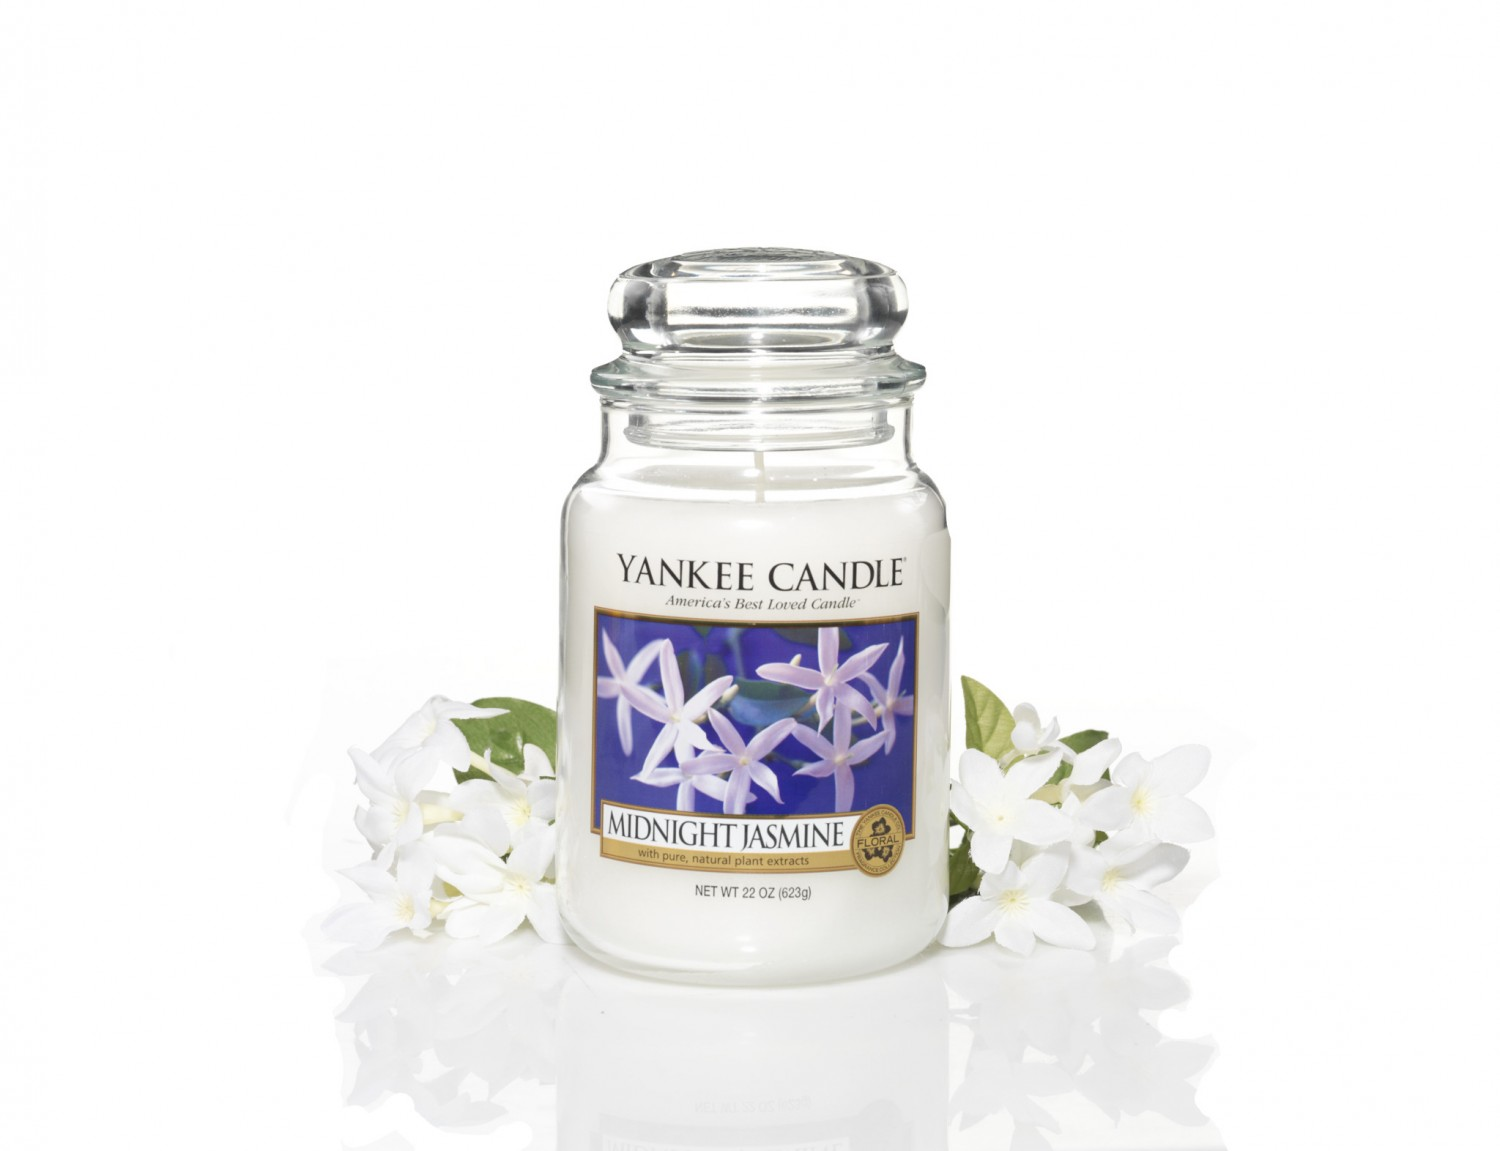 yankee-candle-midnight jasmine